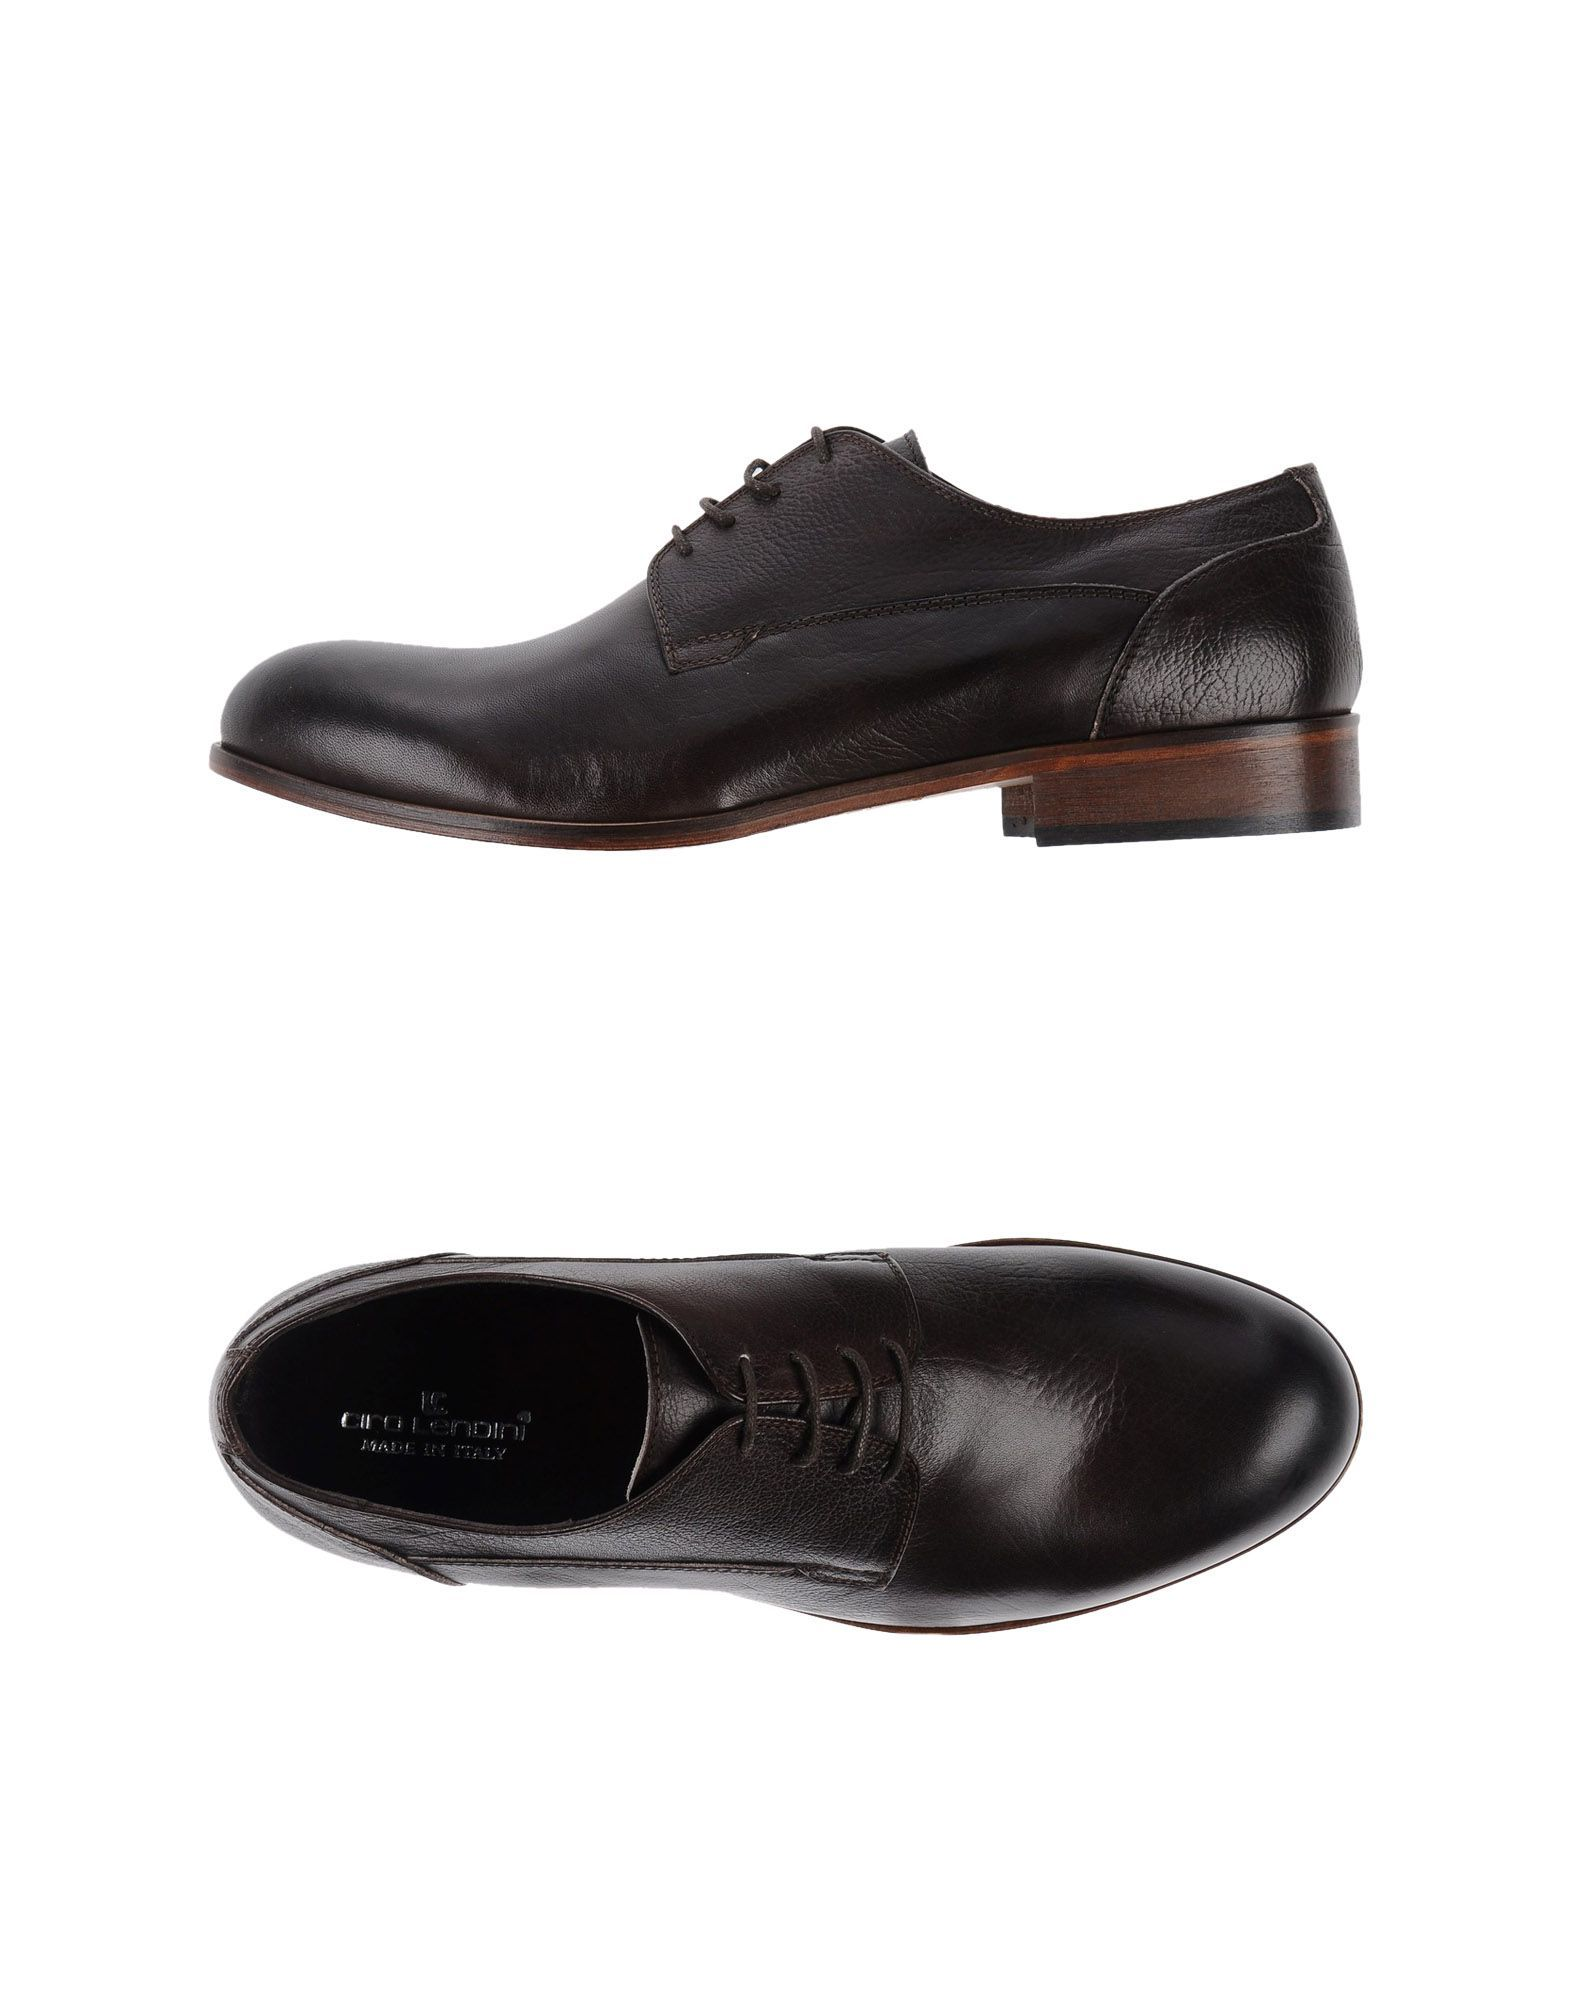 Ciro Lendini Laced Shoes - Men Ciro Lendini Laced Shoes online on YOOX Peru